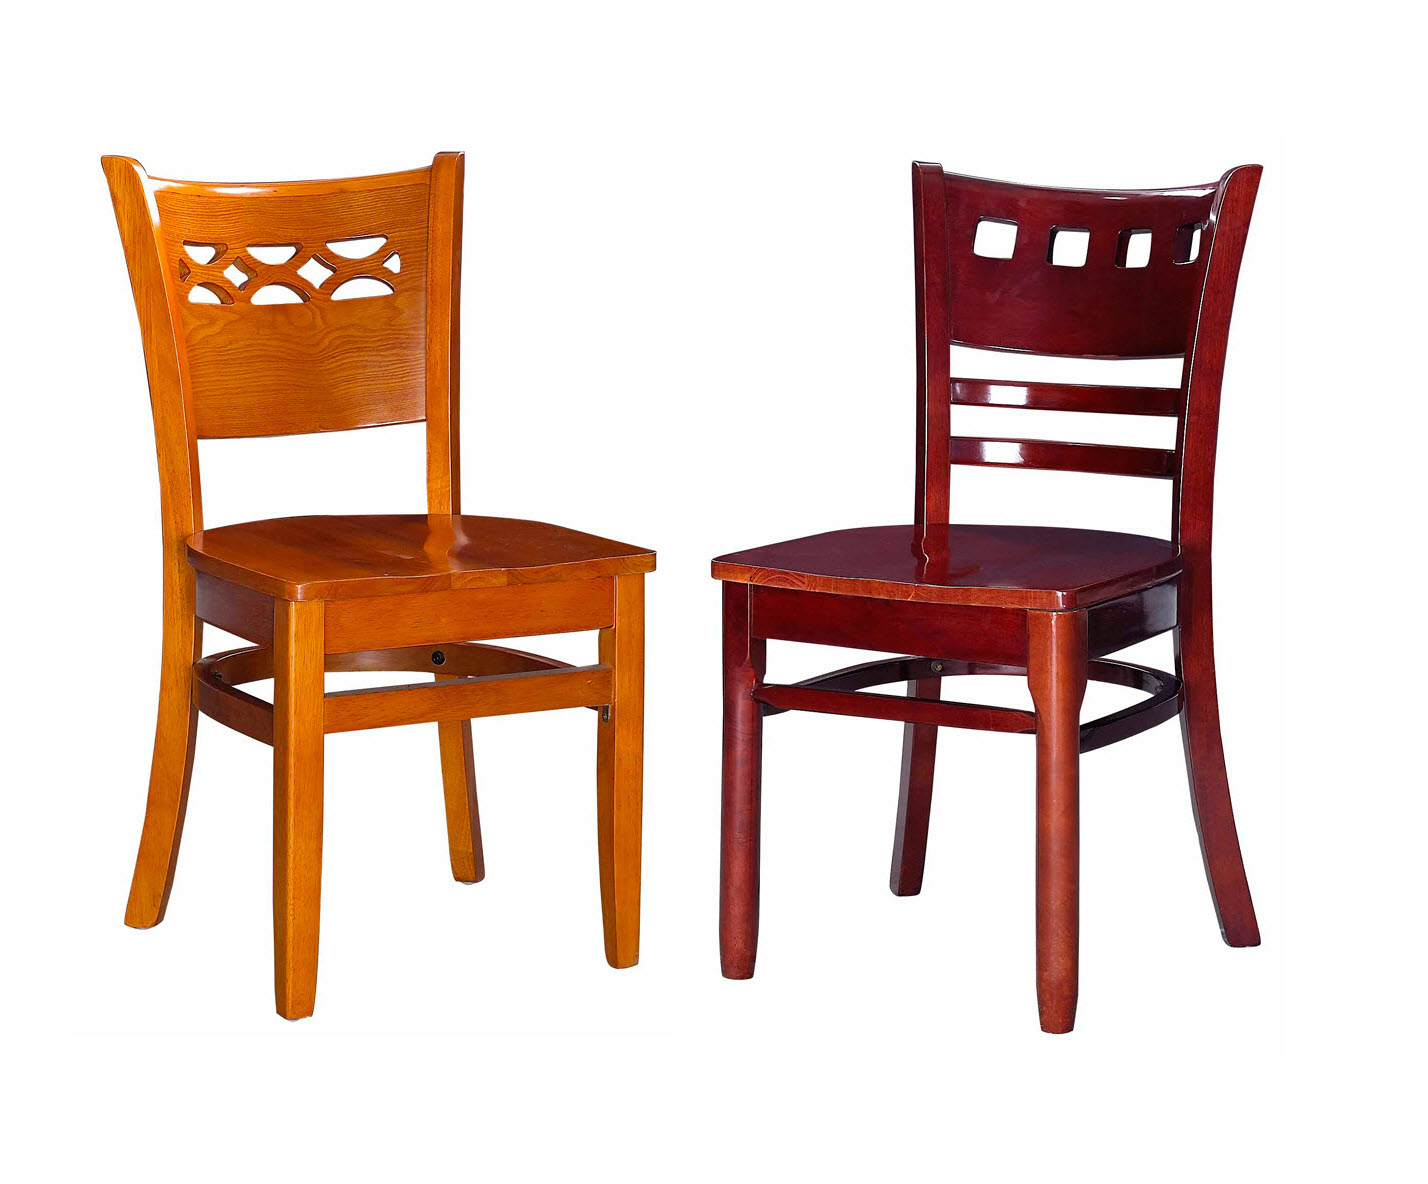 Restaurant chairs restaurant seating blog for Restaurant furniture